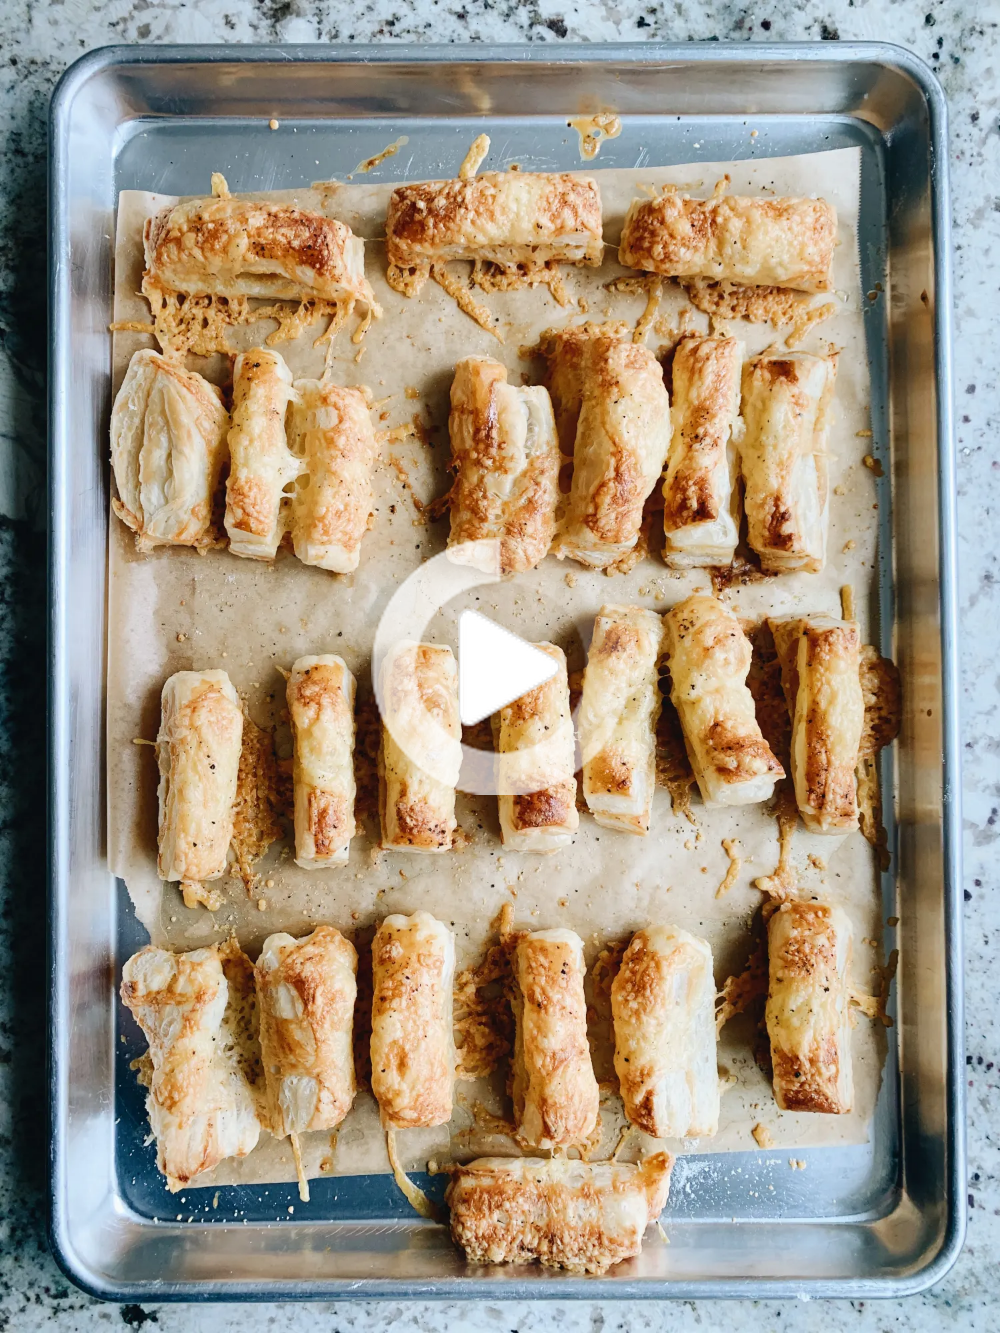 Ina Garten's Cheesy Puff Pastry Batons Are So Good, I've Made Them Eve